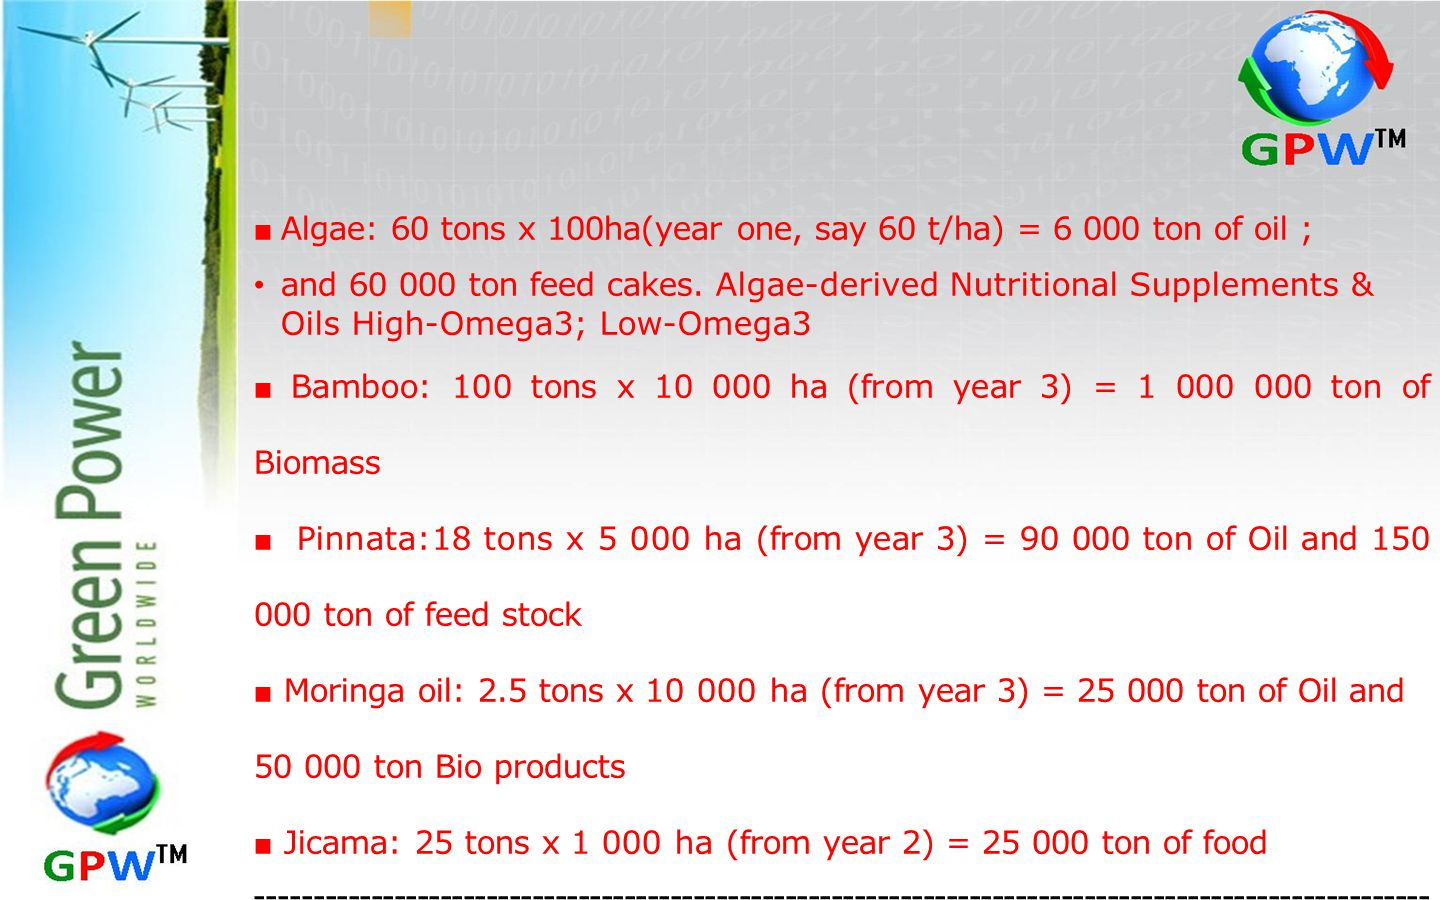 ■ Algae: 60 tons x 100ha(year one, say 60 t/ha) = 6 000 ton of oil ;